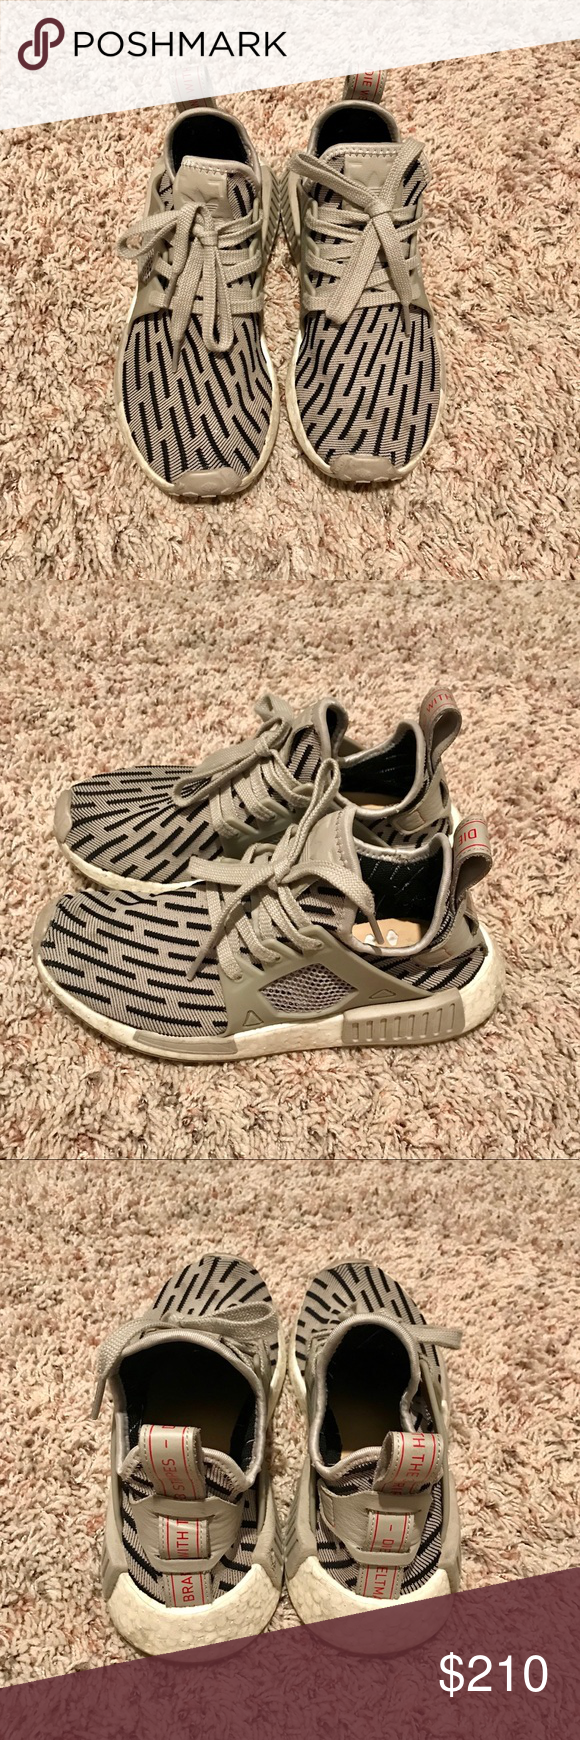 adidas nmd NMD adidas NMD XR1 #used #used #excellentcondition #excellentcondition 03eb965 - colja.host